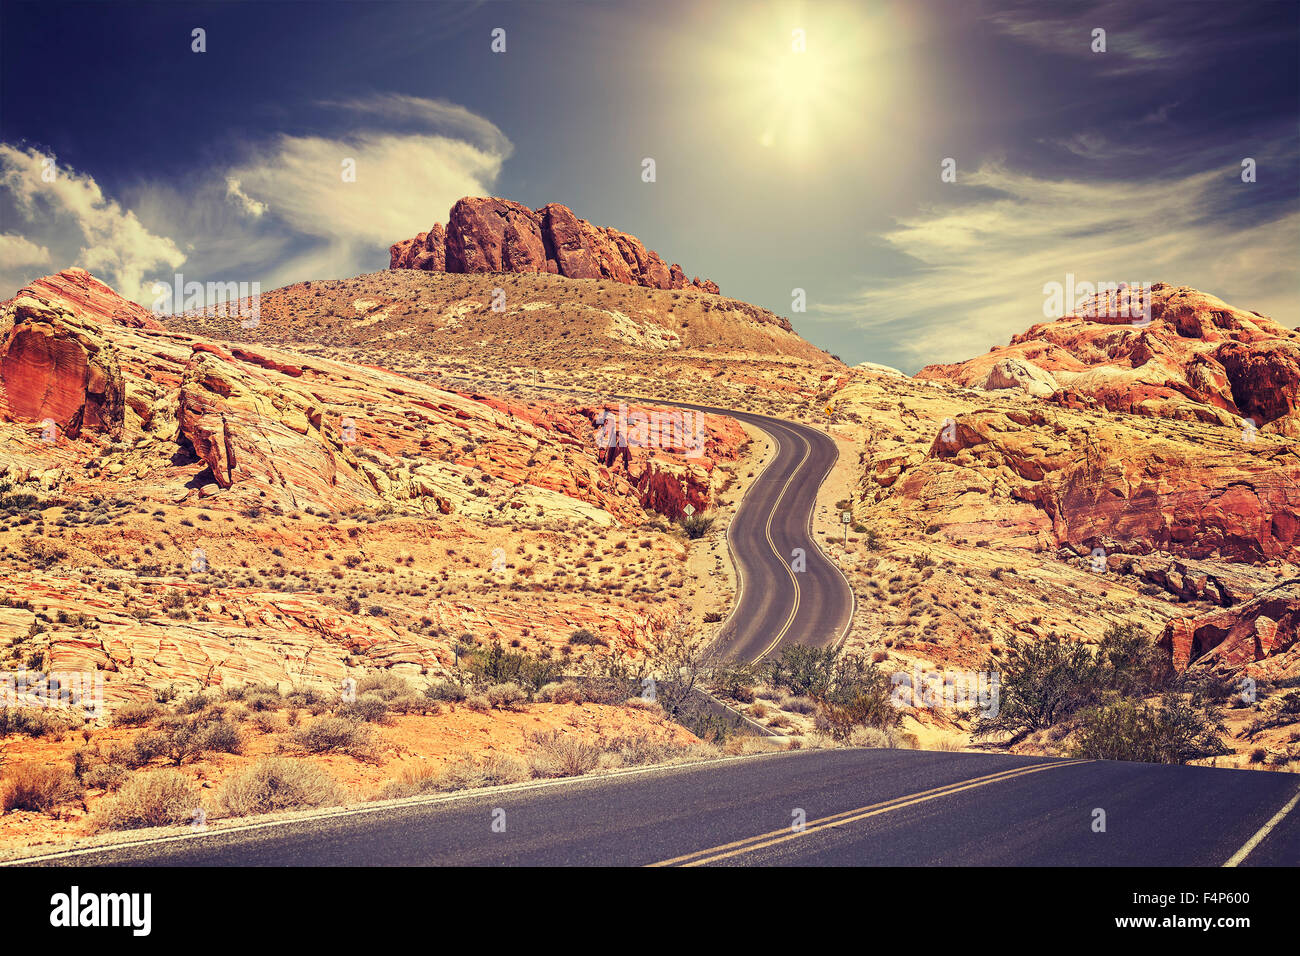 Retro stylized picture of a country road, travel concept, USA. - Stock Image